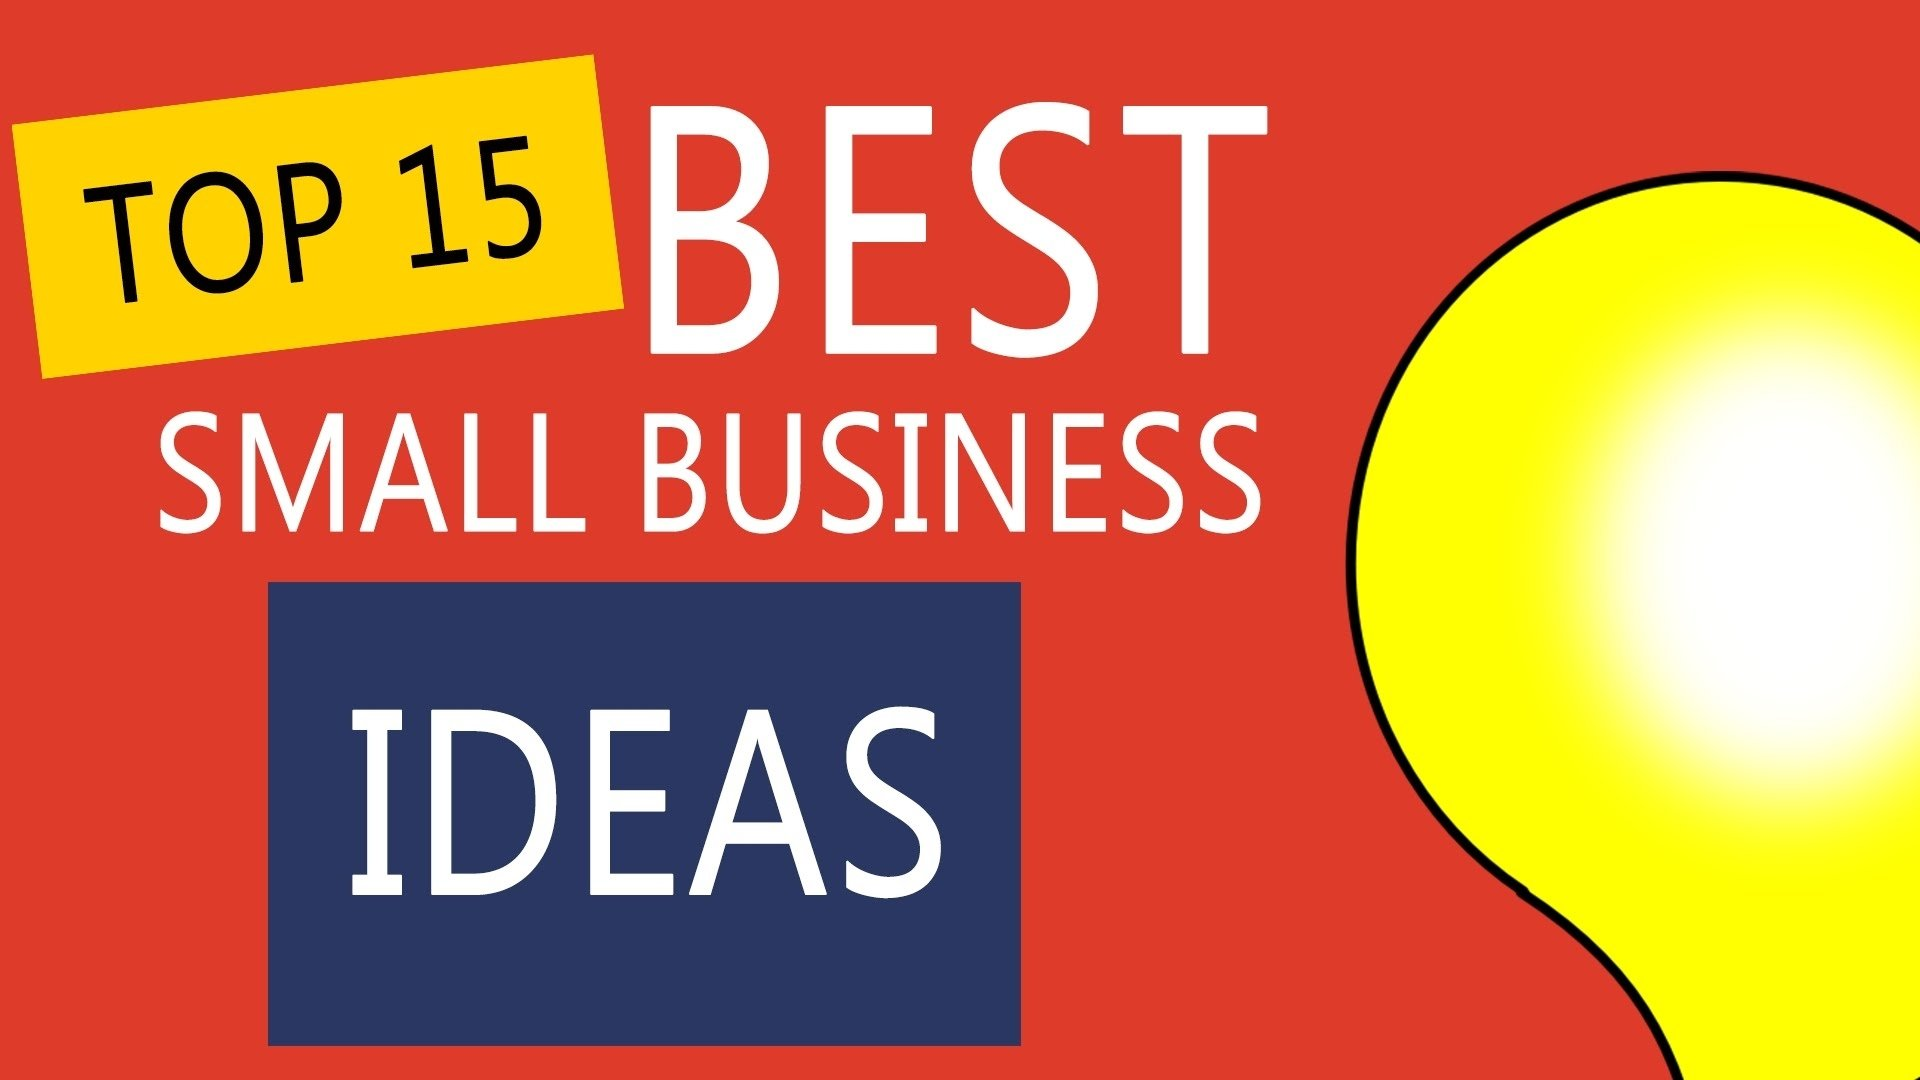 10 Stunning Best New Small Business Ideas top 15 best small business ideas to start your own business youtube 15 2021